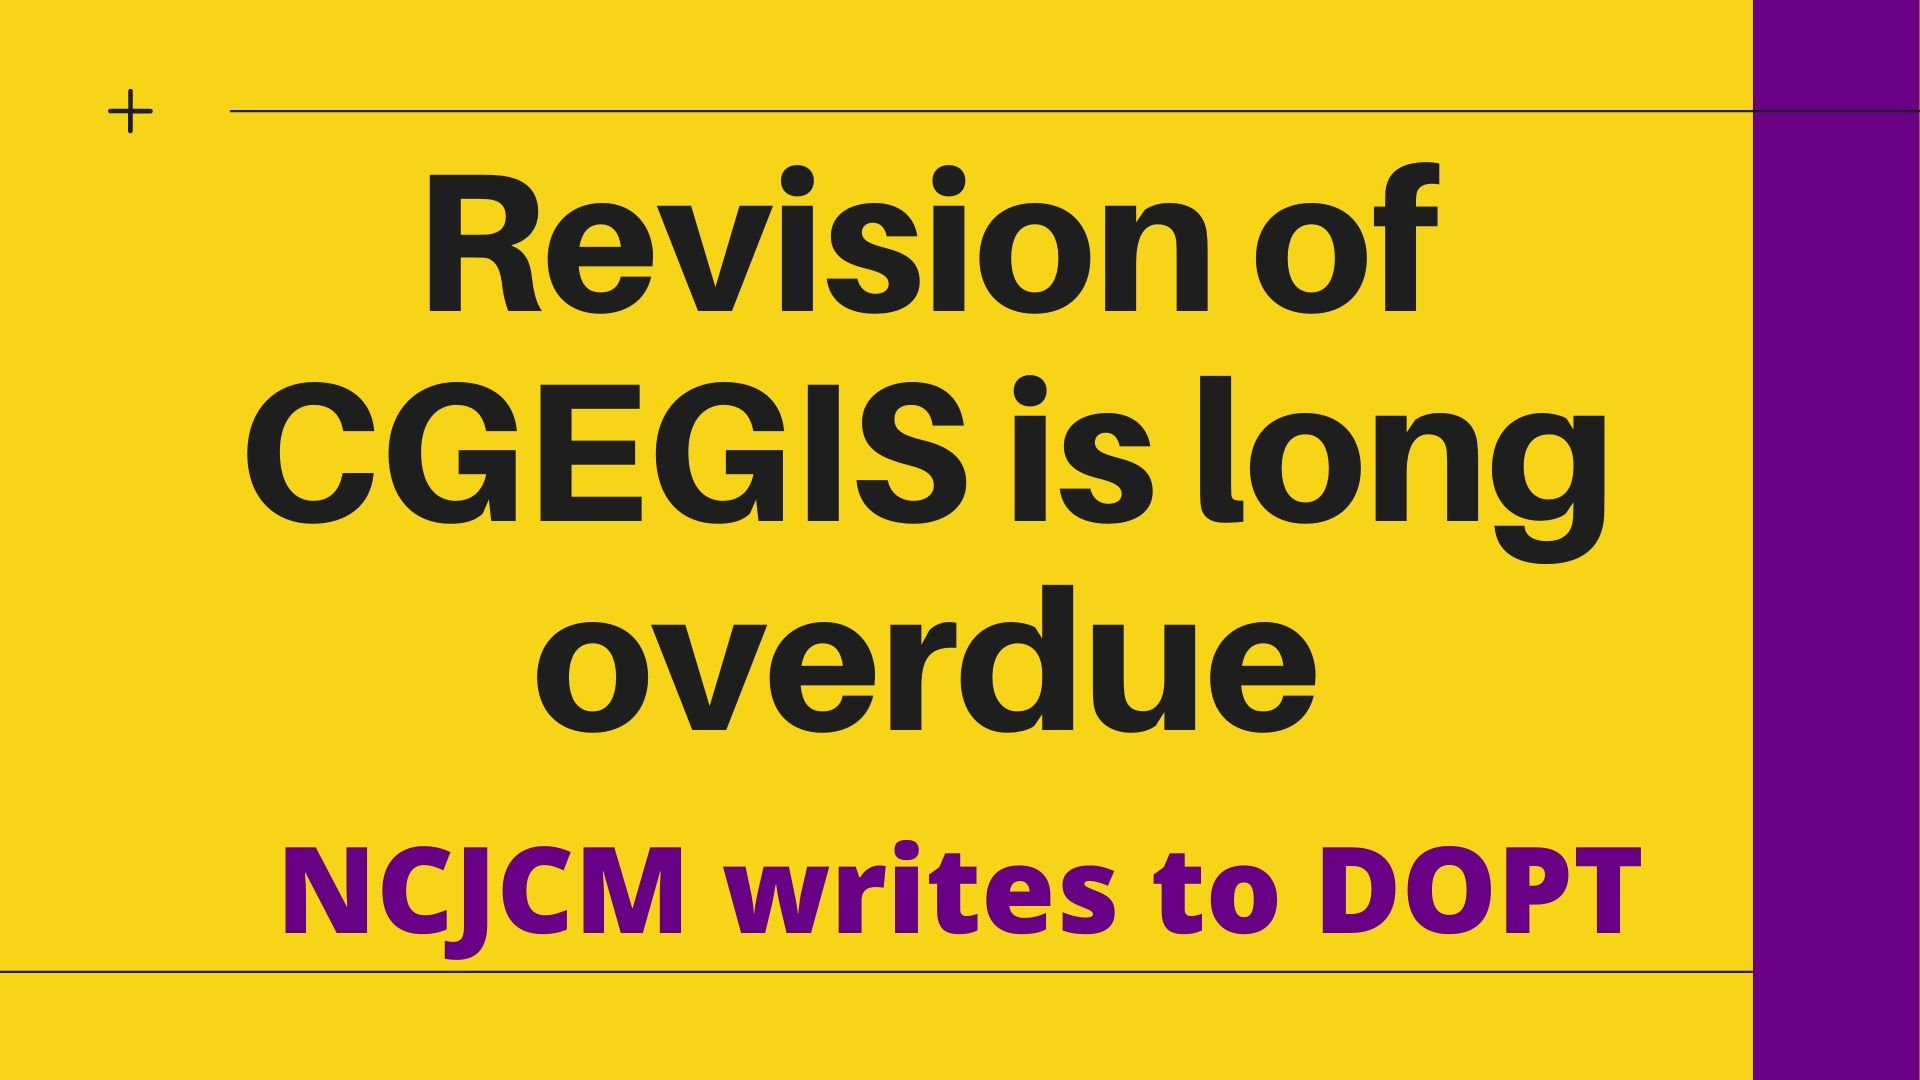 Revision of CGEGIS is long overdue